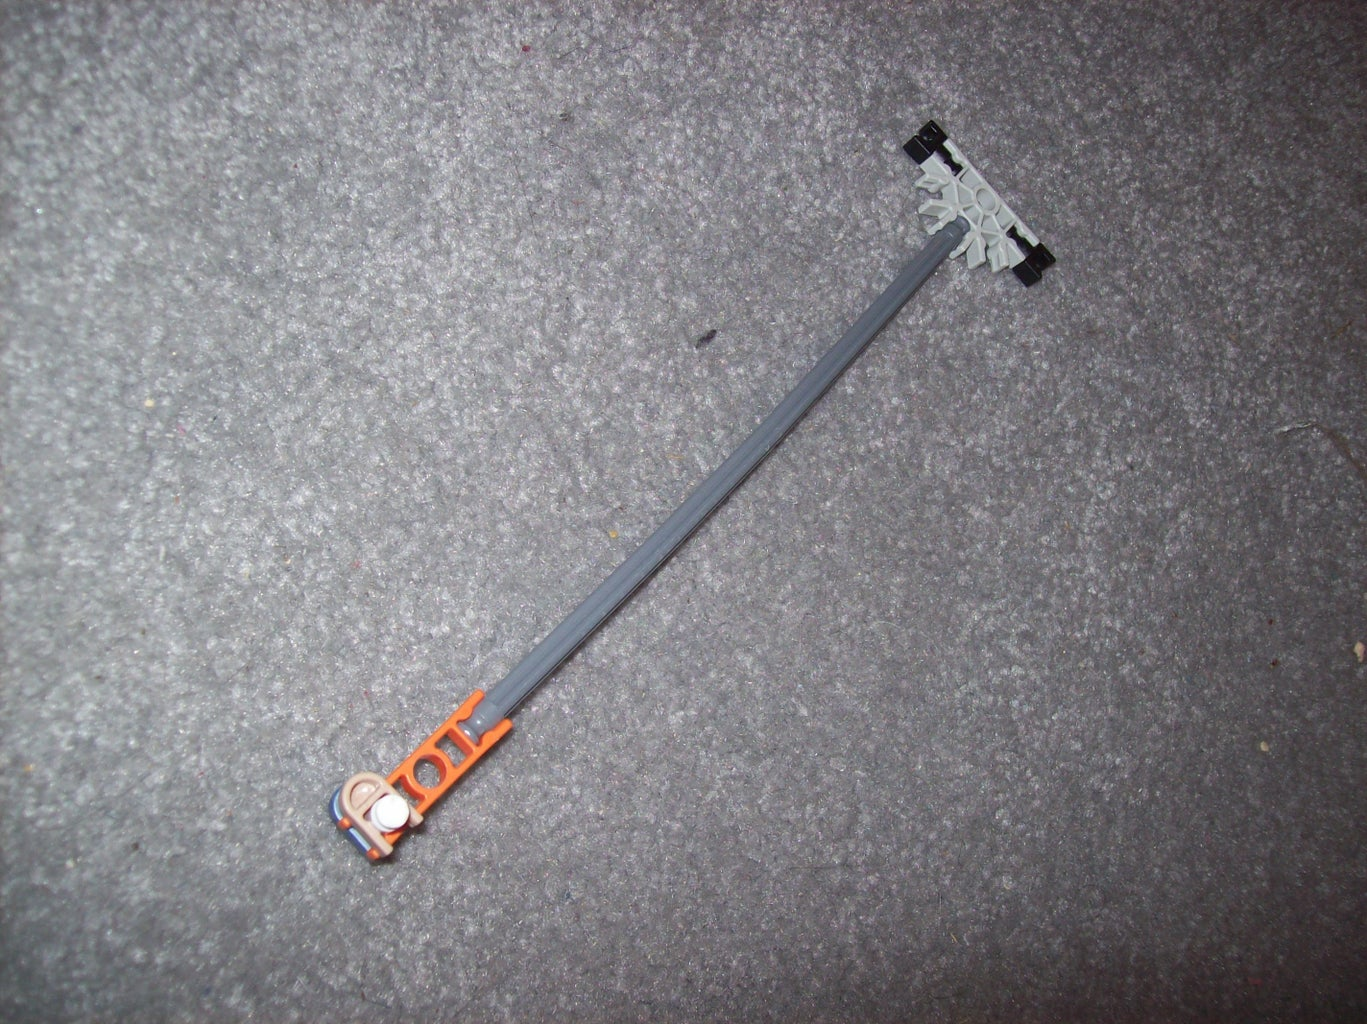 Stock, Handle, Mag, and Other Misc. Parts